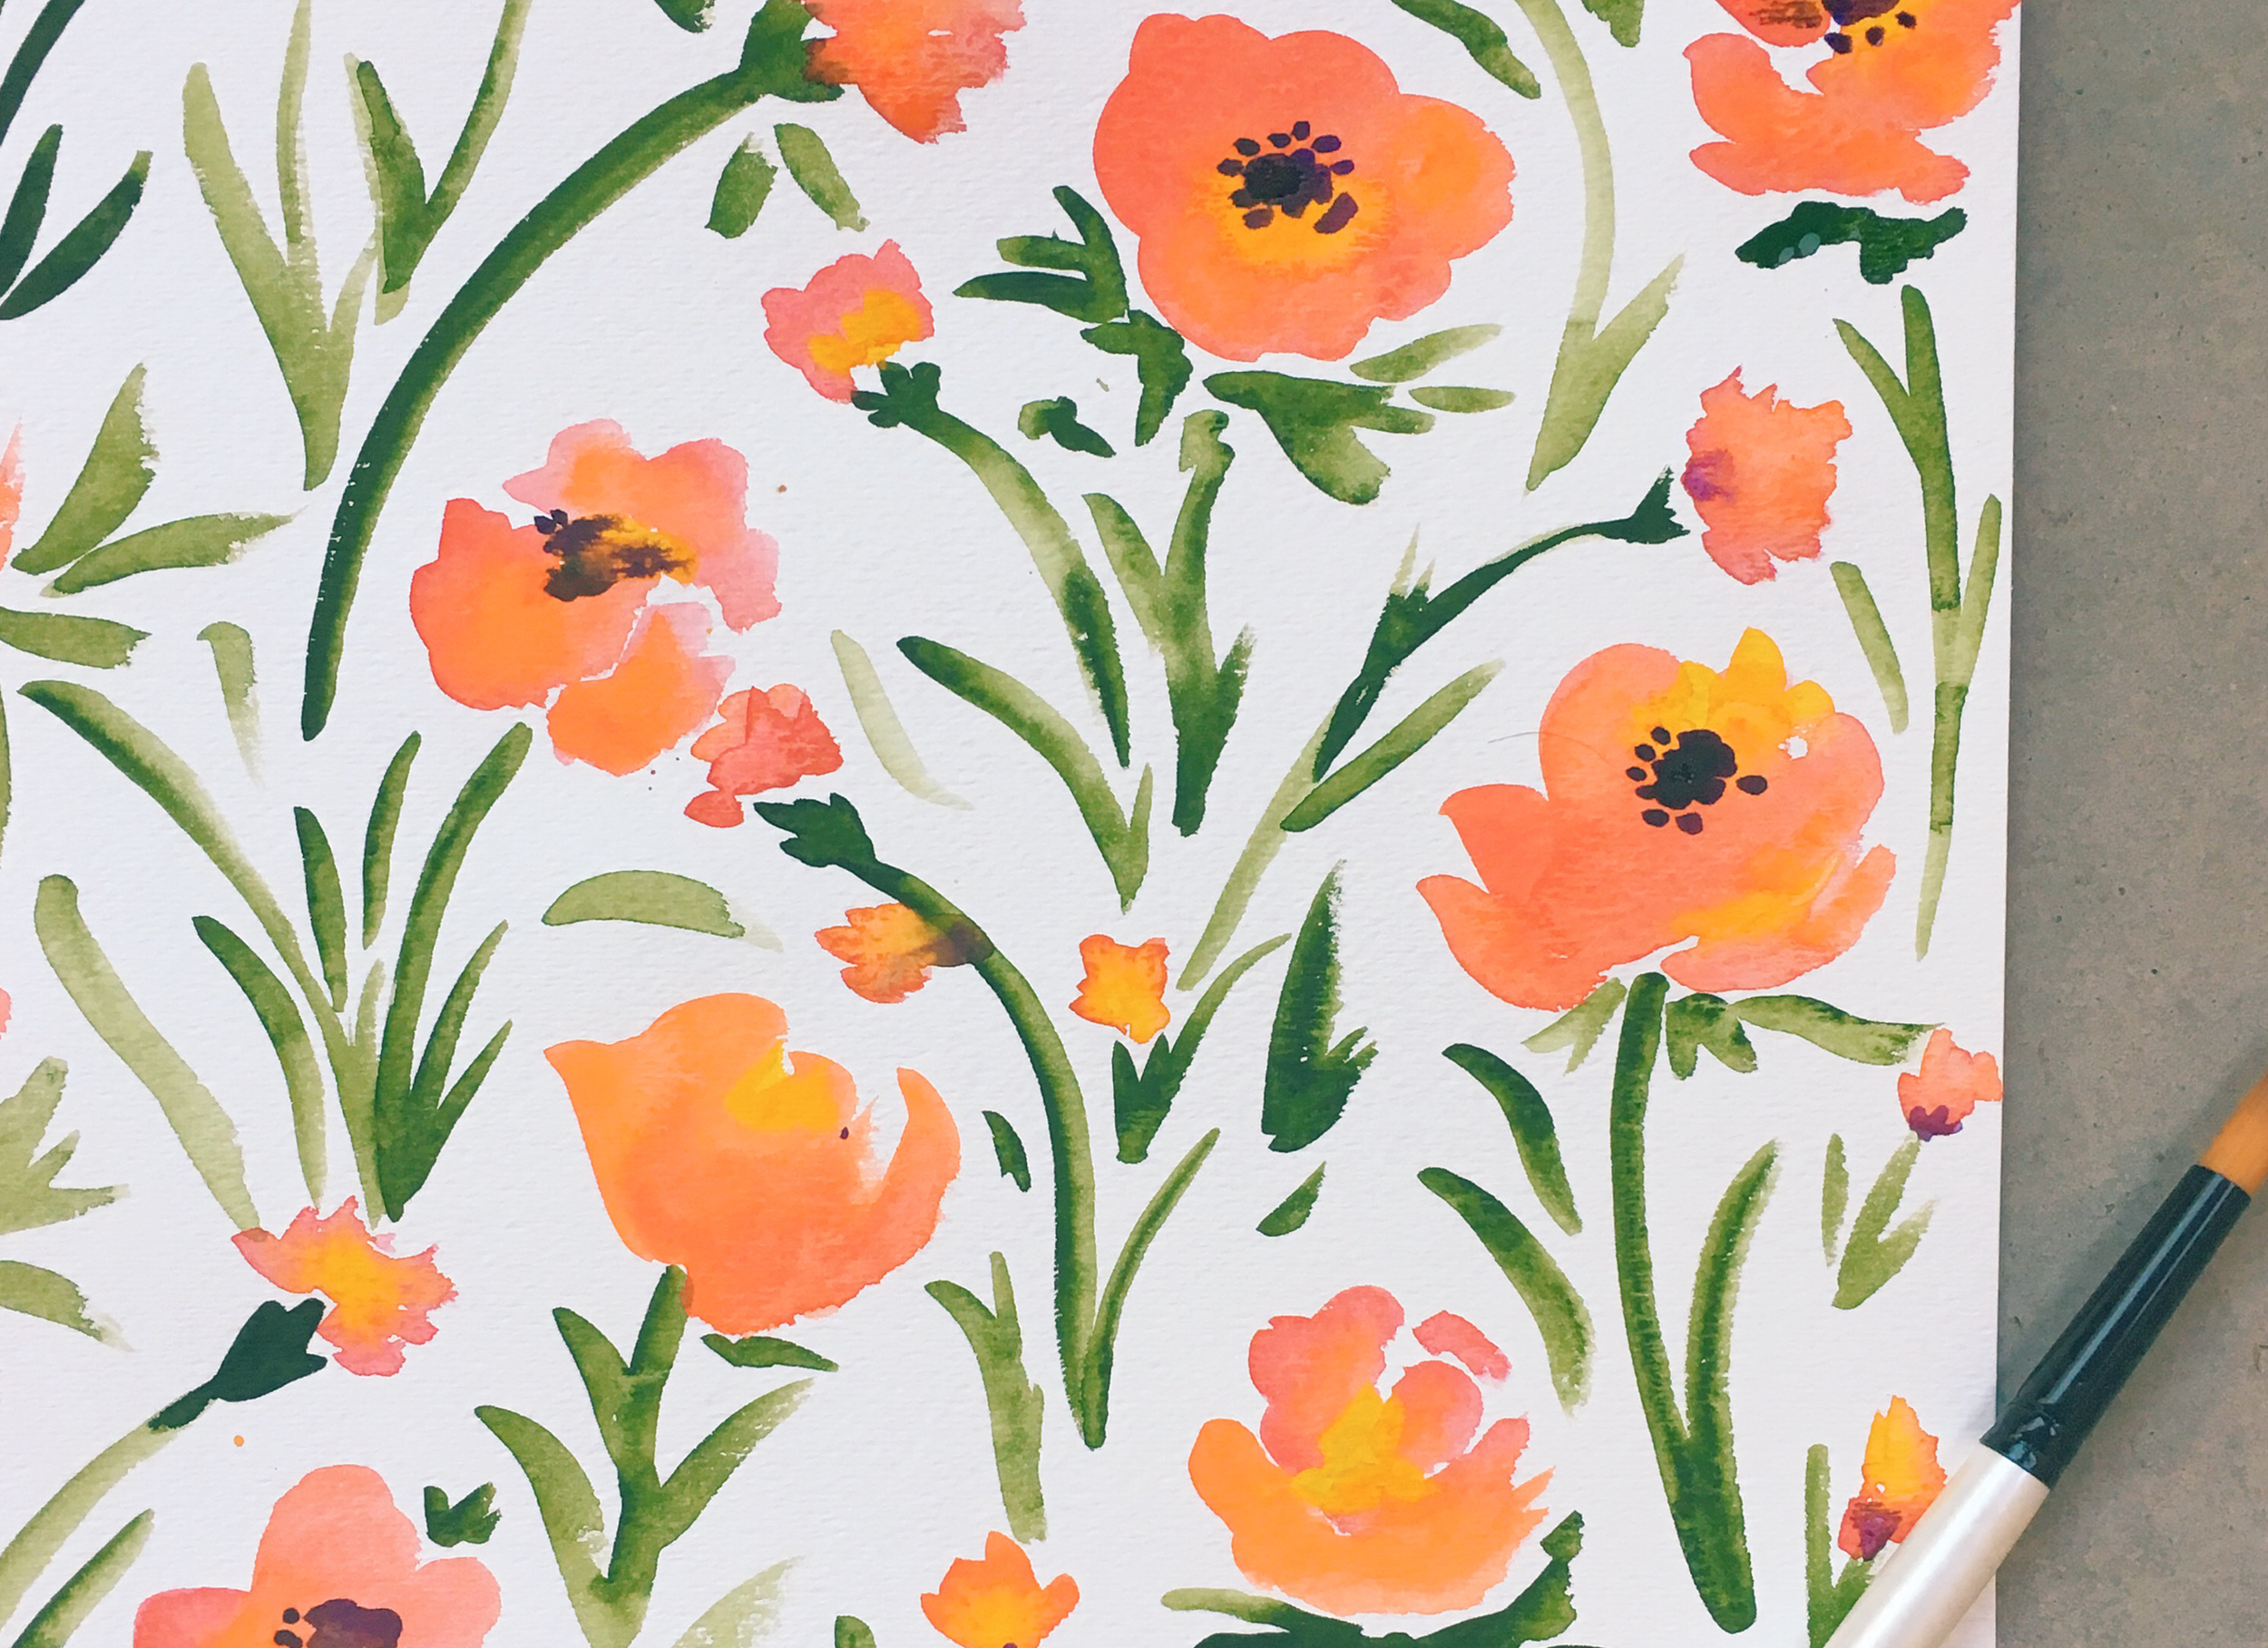 Watercolor poppies by Pace Creative Design Studio